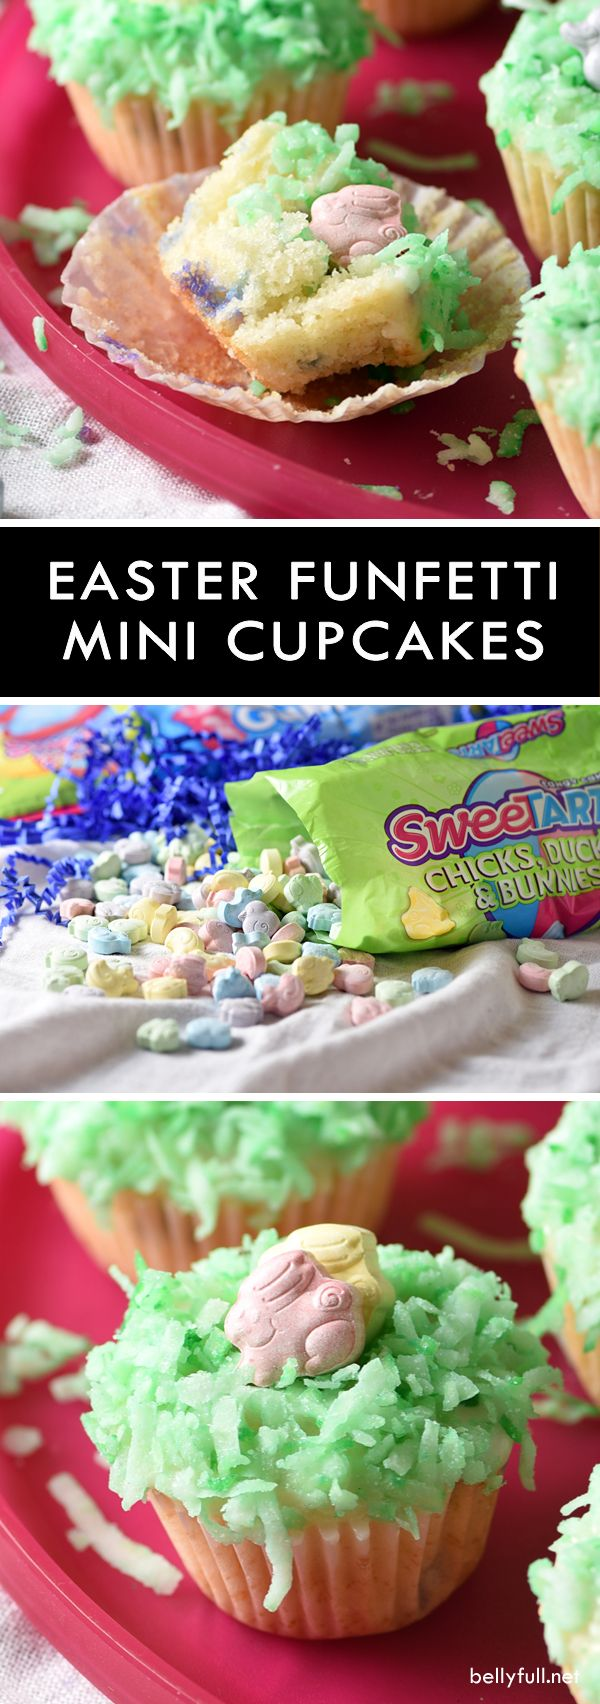 These Easter Mini Funfetti Cupcakes featuring sprinkles, icing, coconut, and @SweeTARTS are a fun springtime treat and super easy to make! #spon